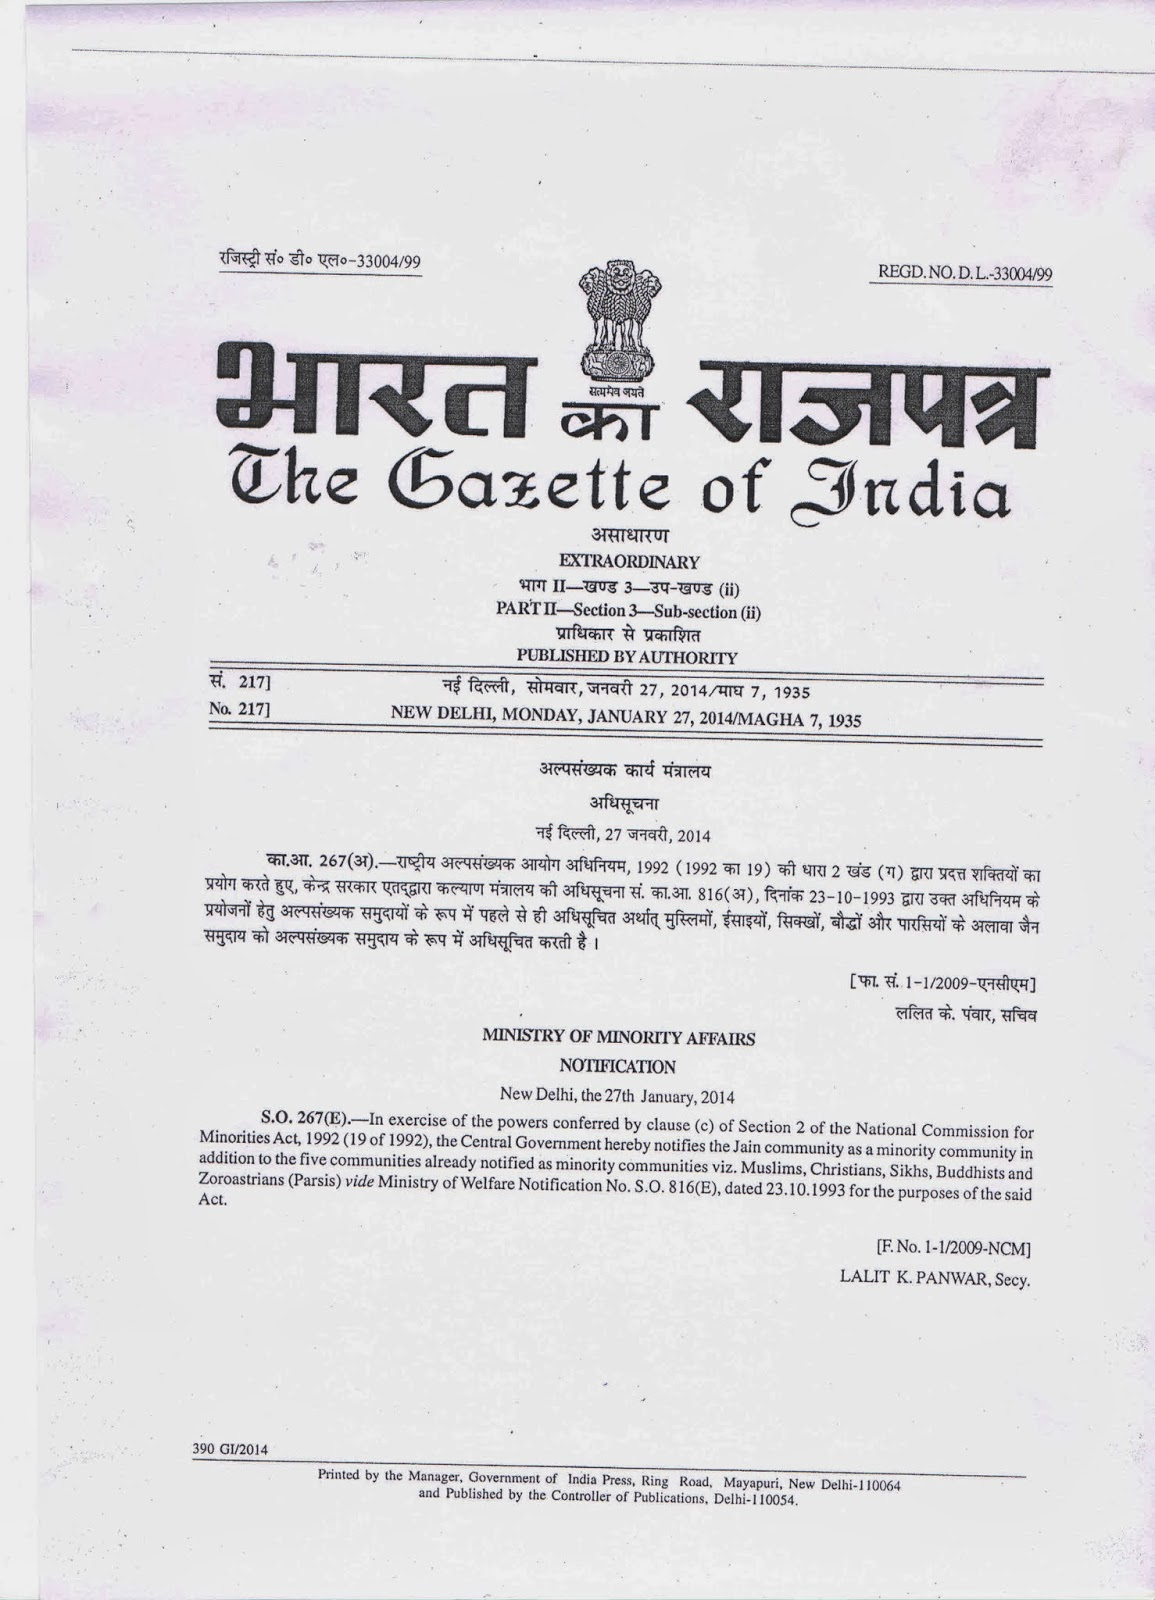 gazette notification of central governmentreligious minority status for jain